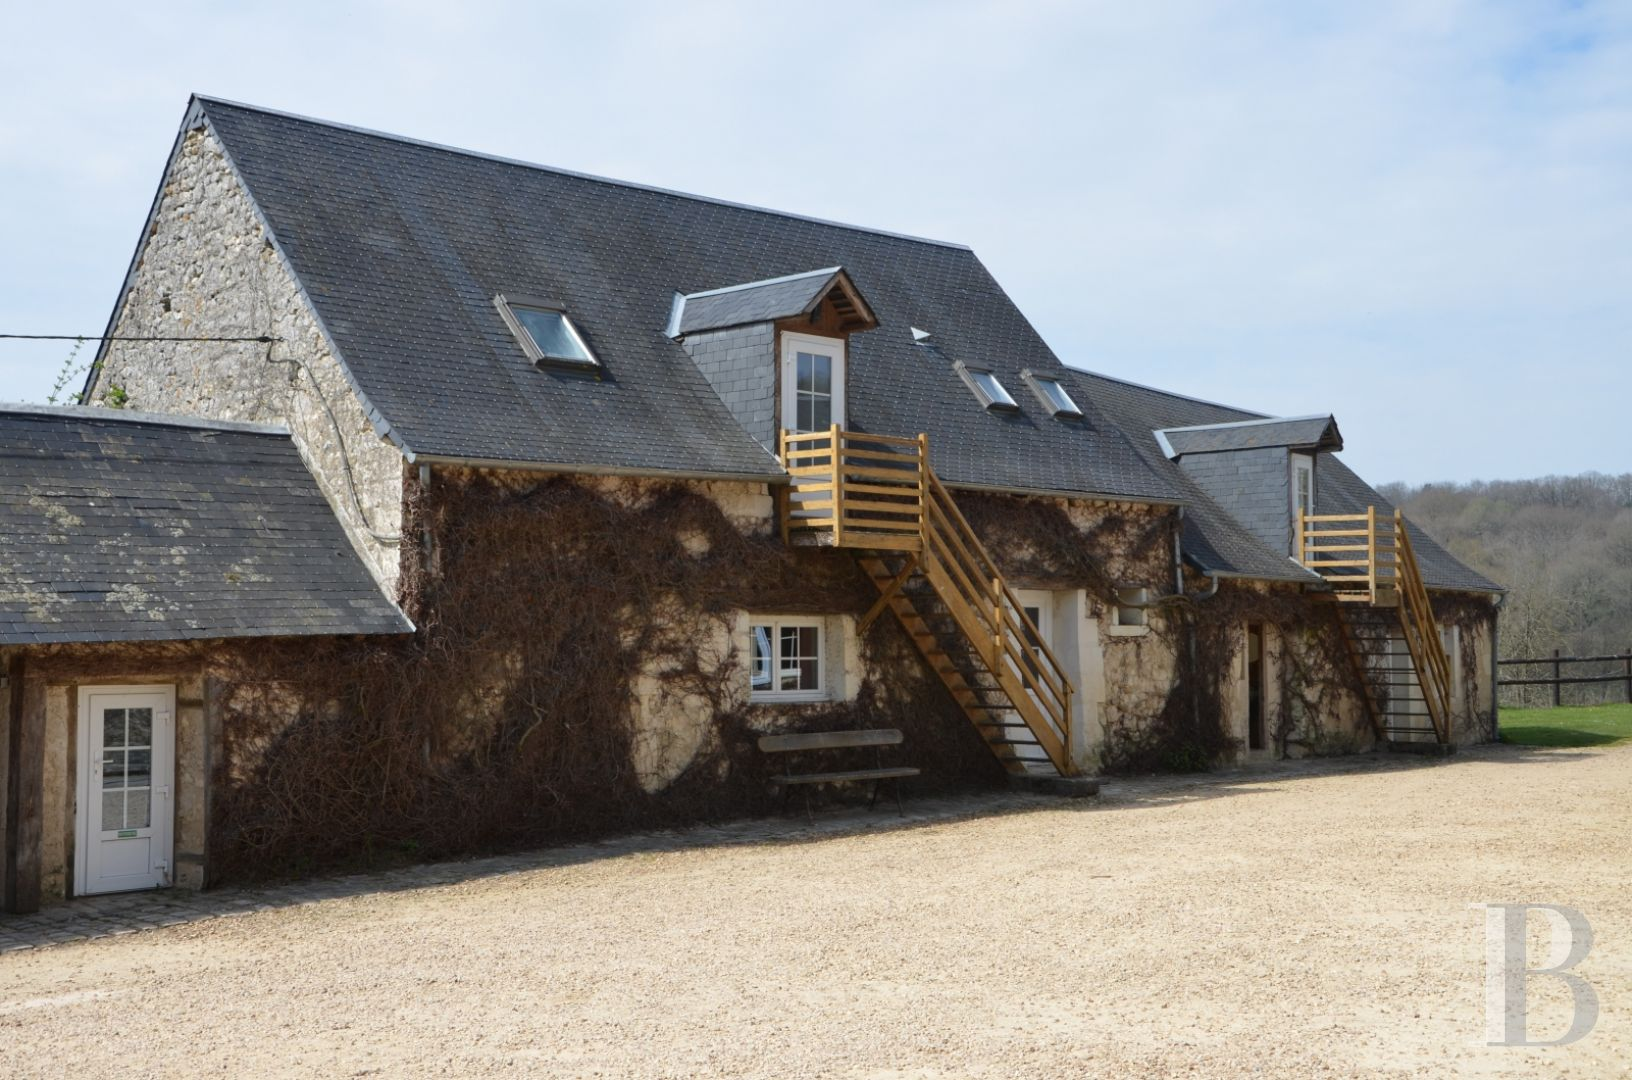 France mansions for sale pays de loire manors farms - 14 zoom